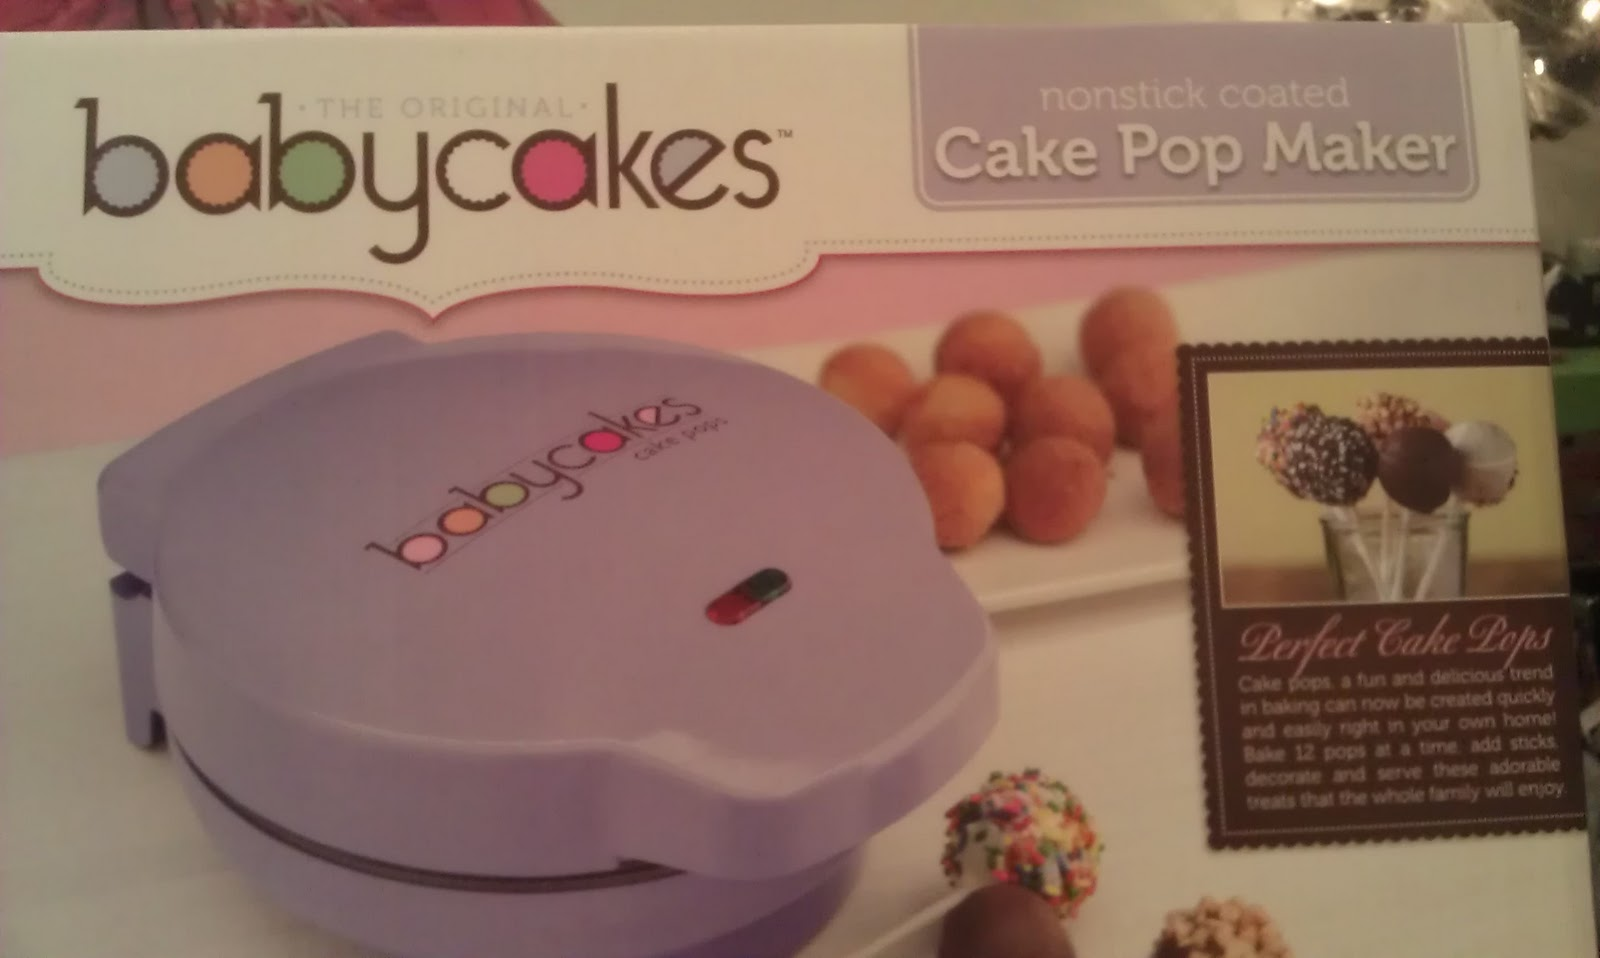 Bake Delicious Cake Pop Maker